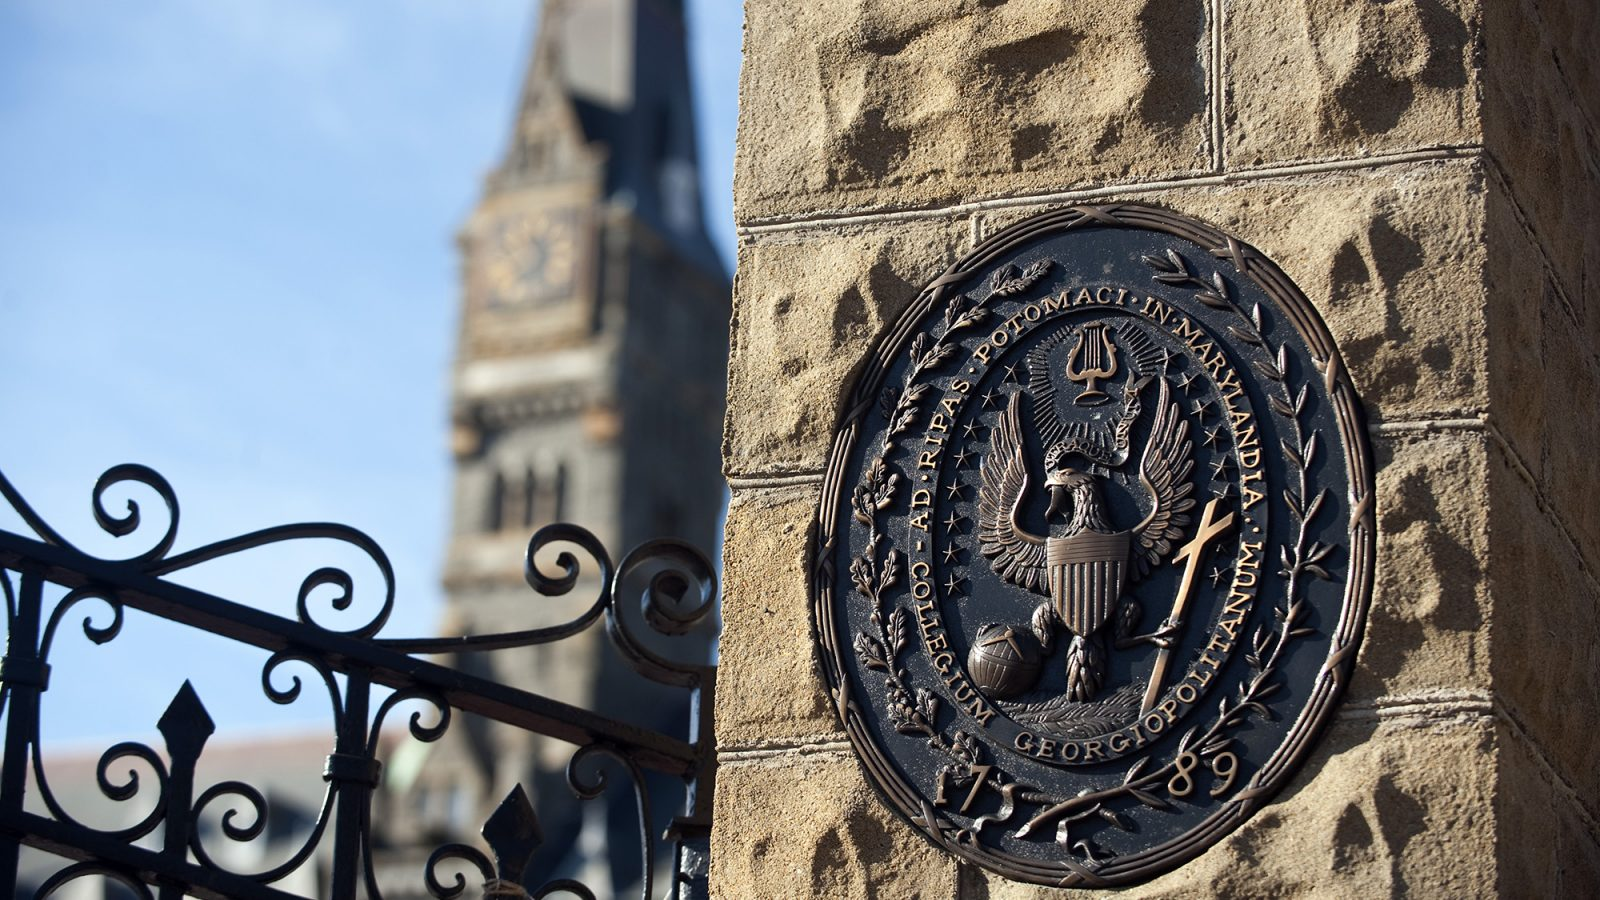 The seal of Georgetown in stone at the gates of the Healy Building, shown in background